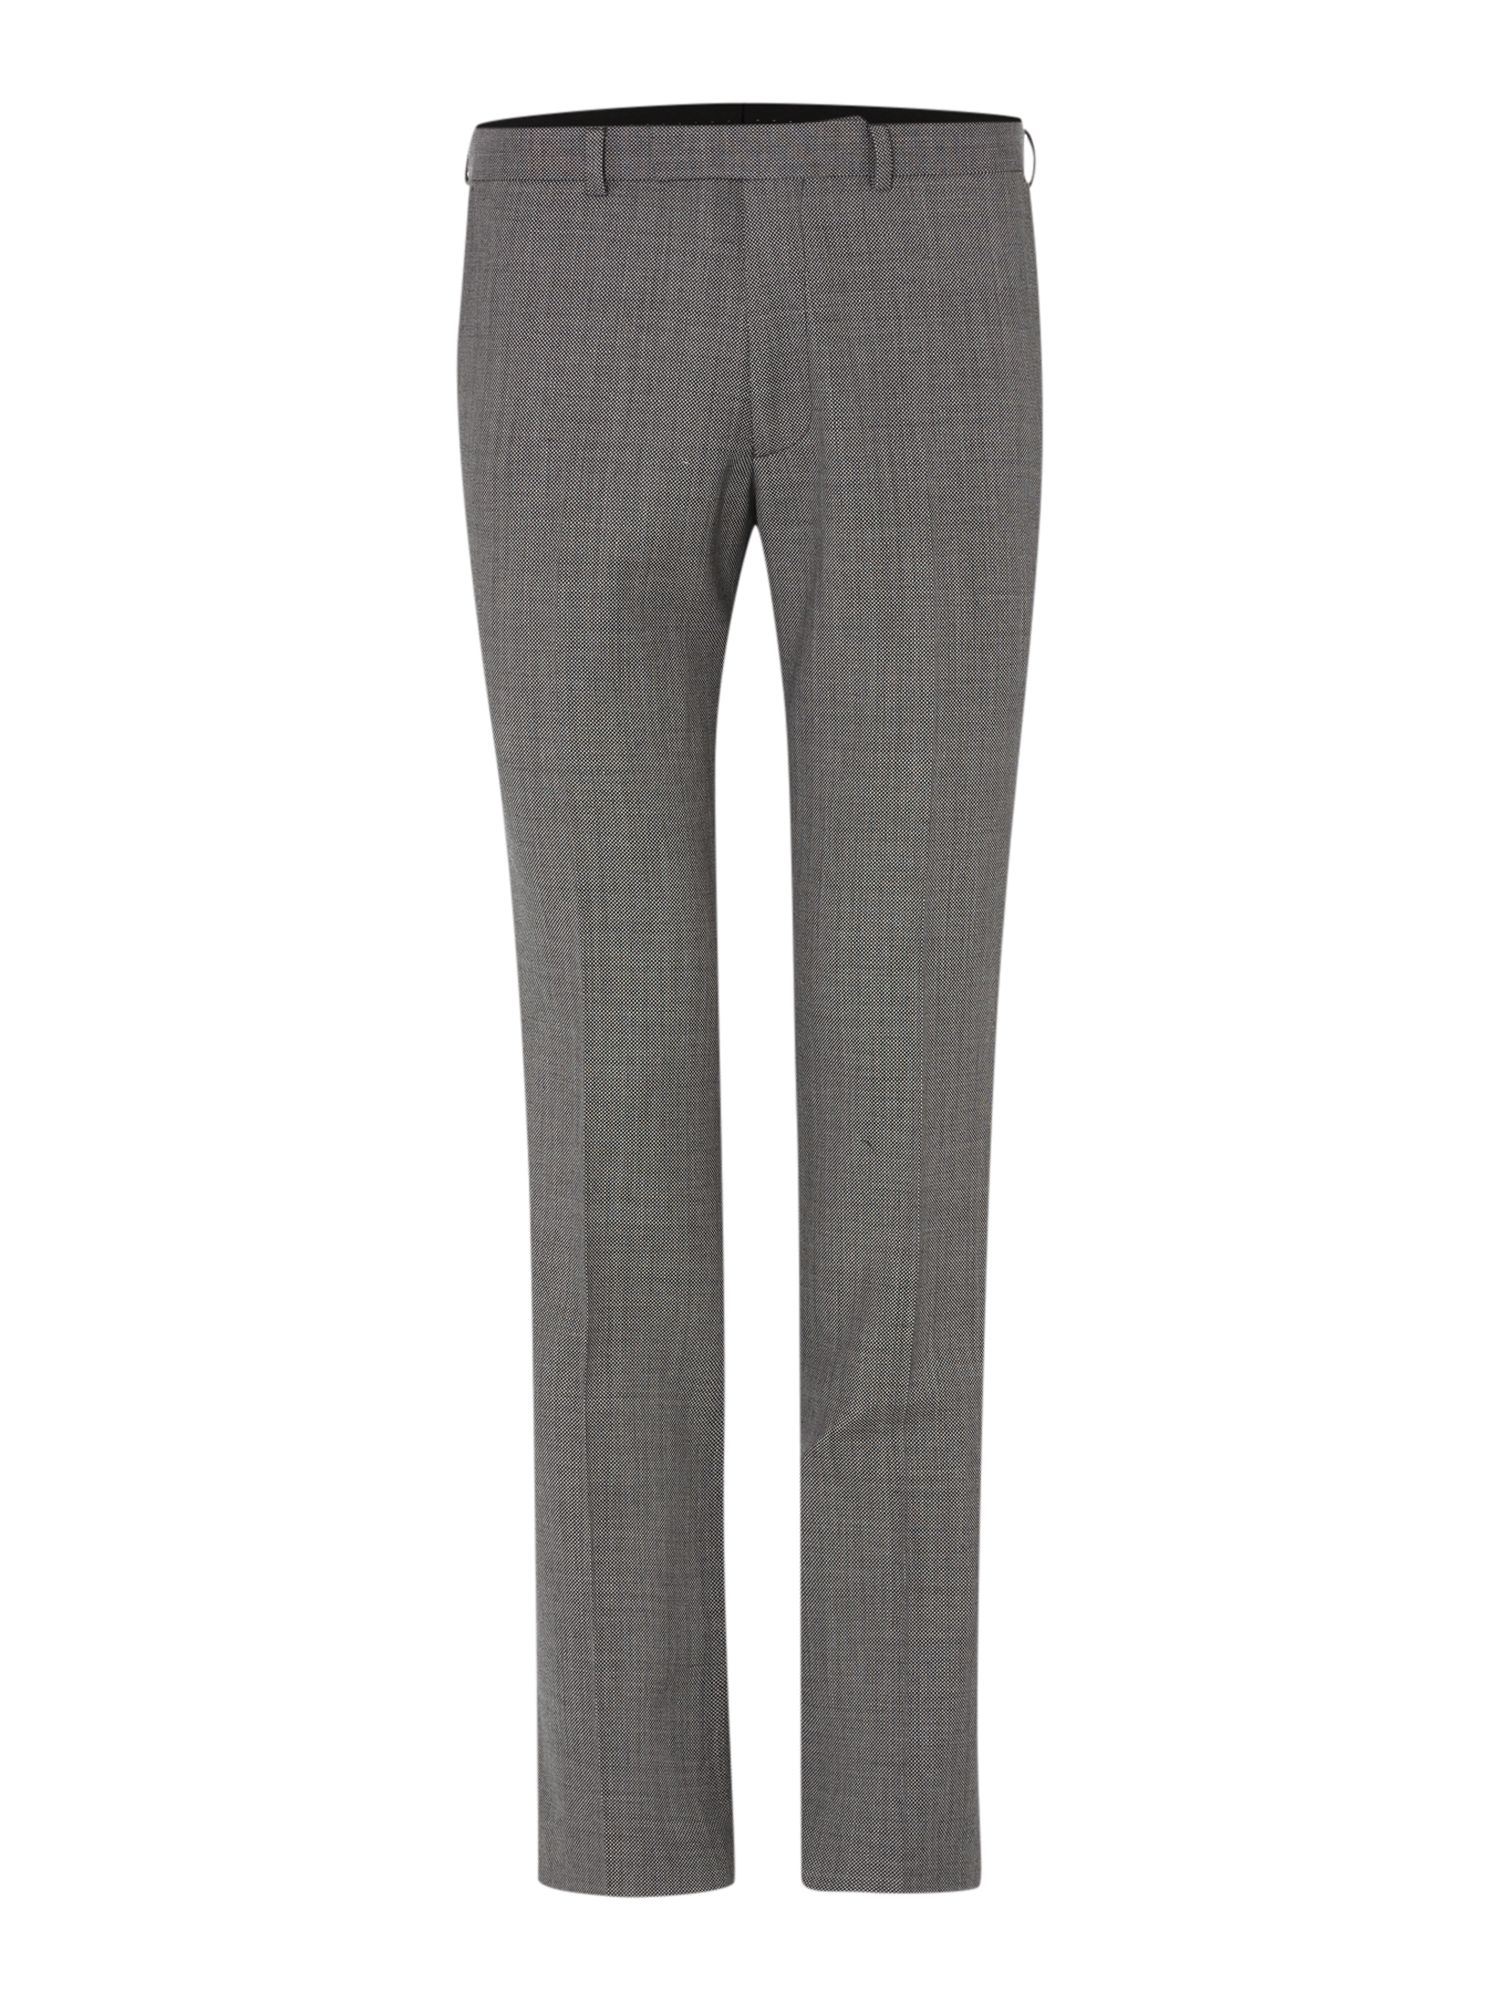 Waverley Birdseye Suit Trouser